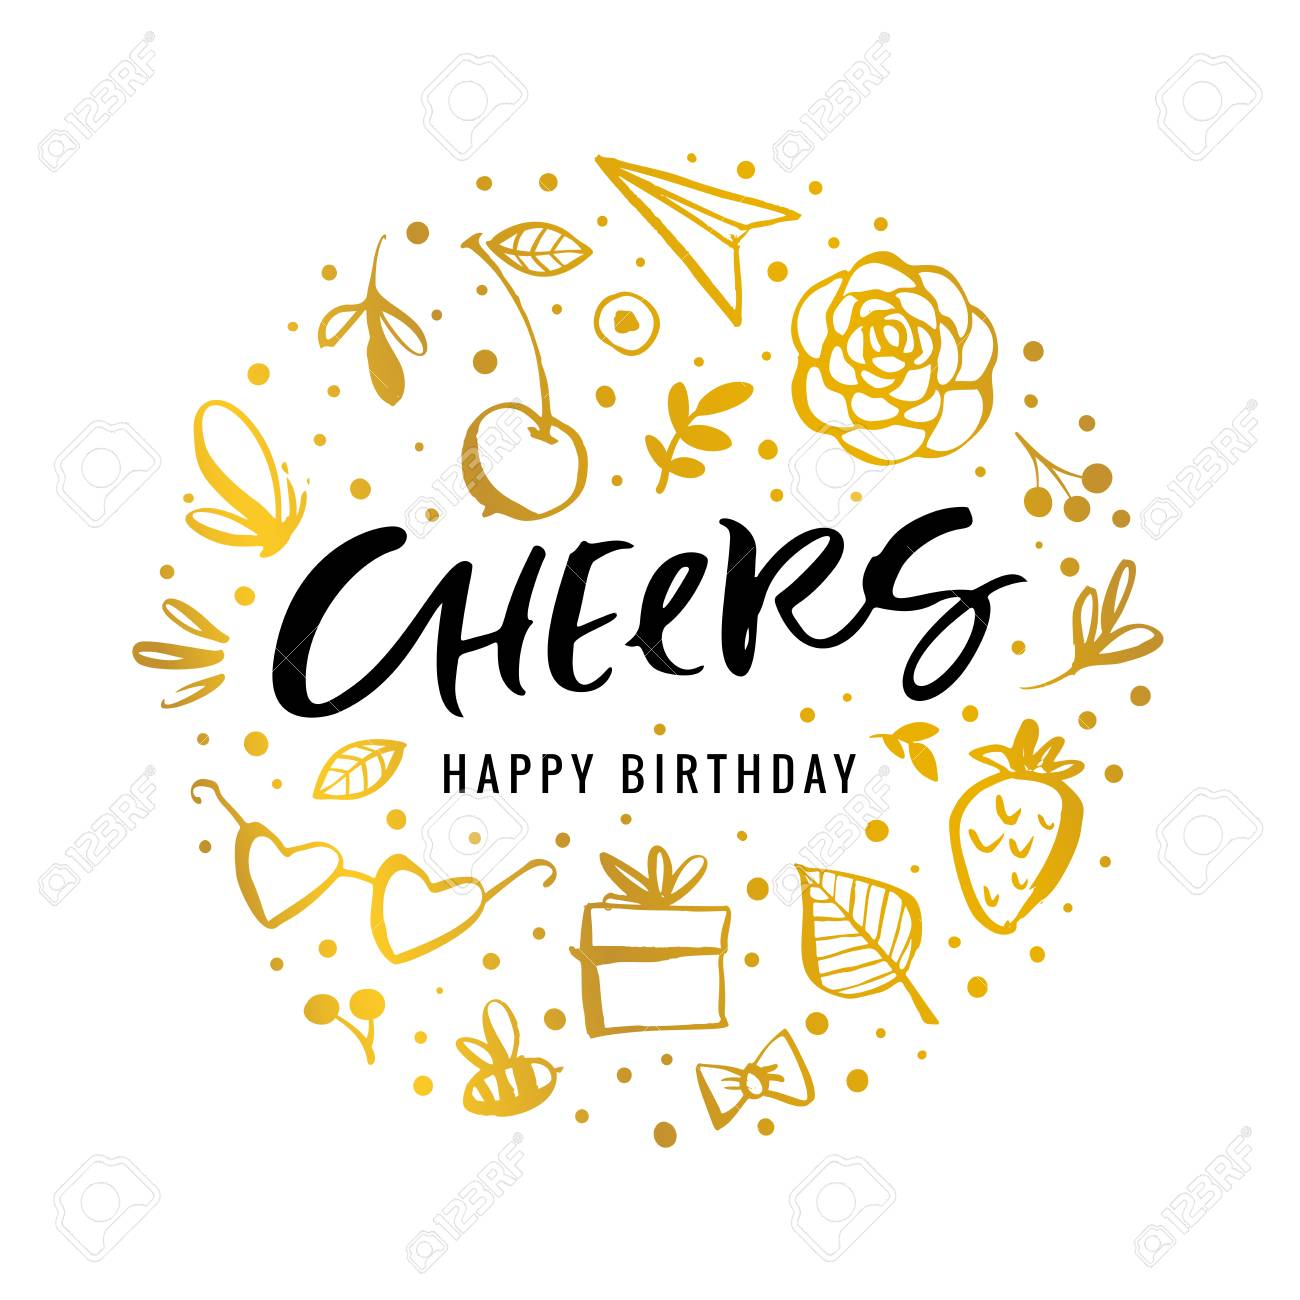 Cheers Happy Birthday Calligraphy Greeting Card With Golden